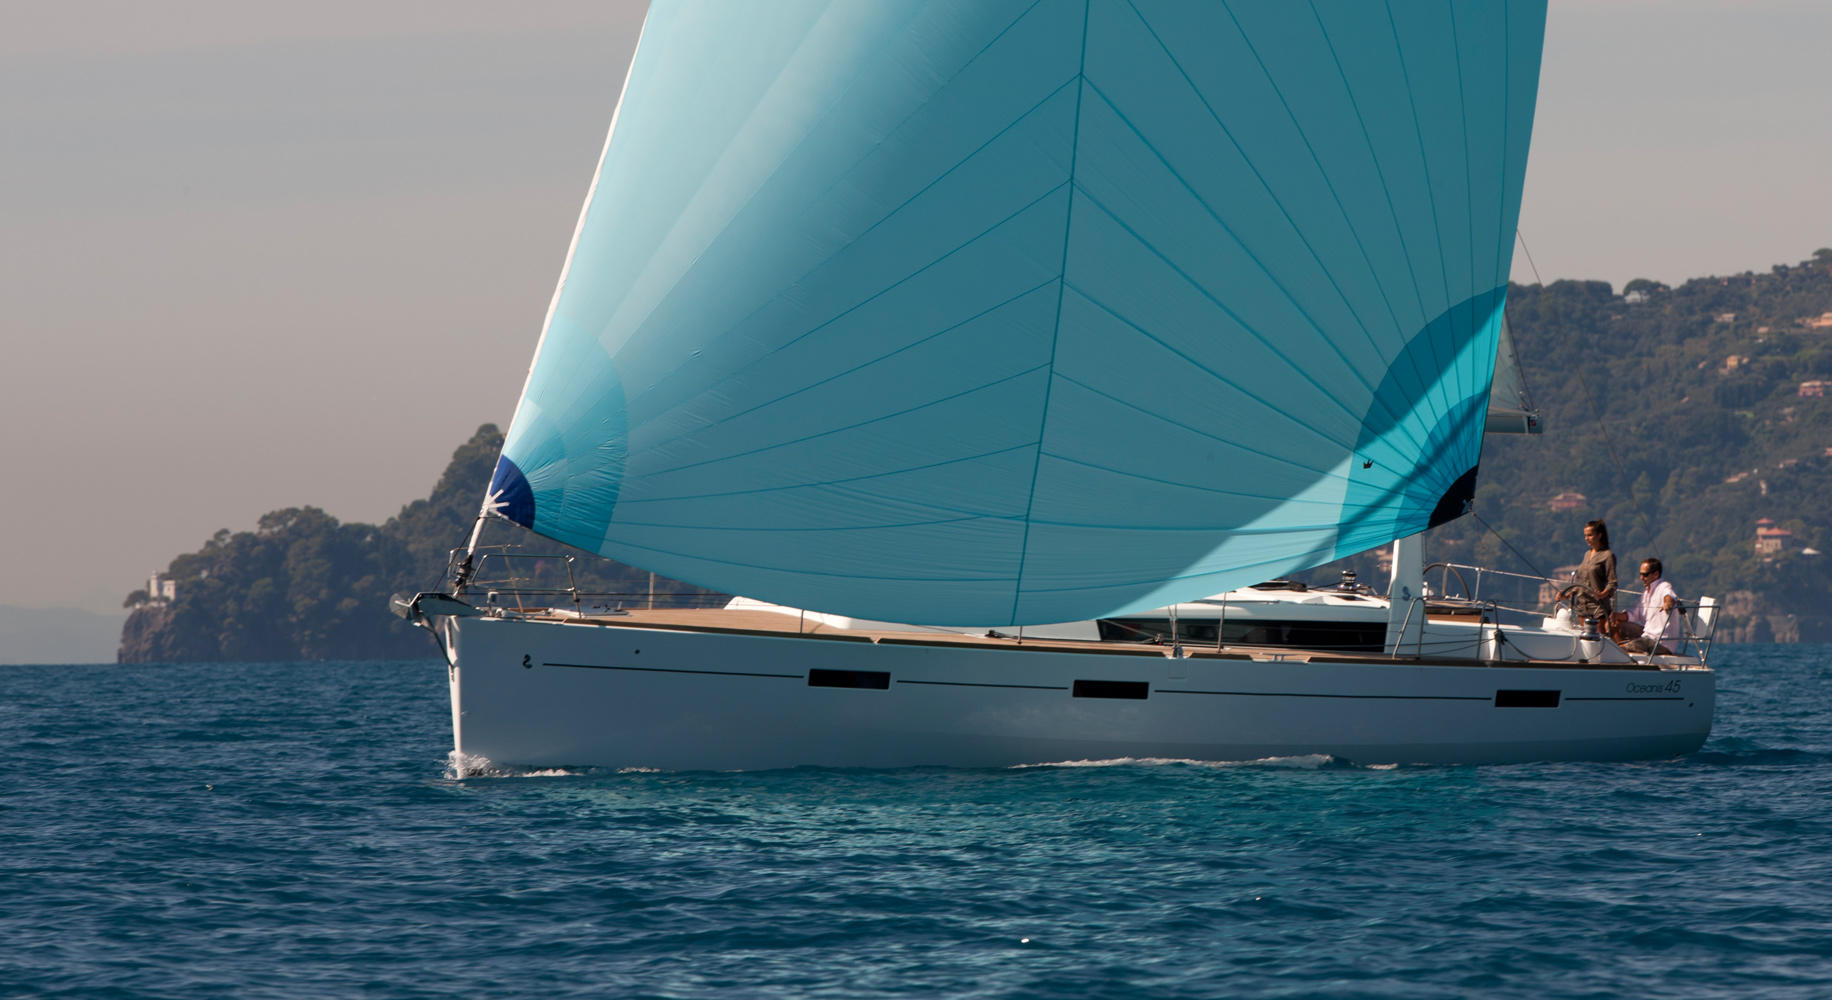 Oceanis 45 Class - Sailing Yacht for Charter in Greece